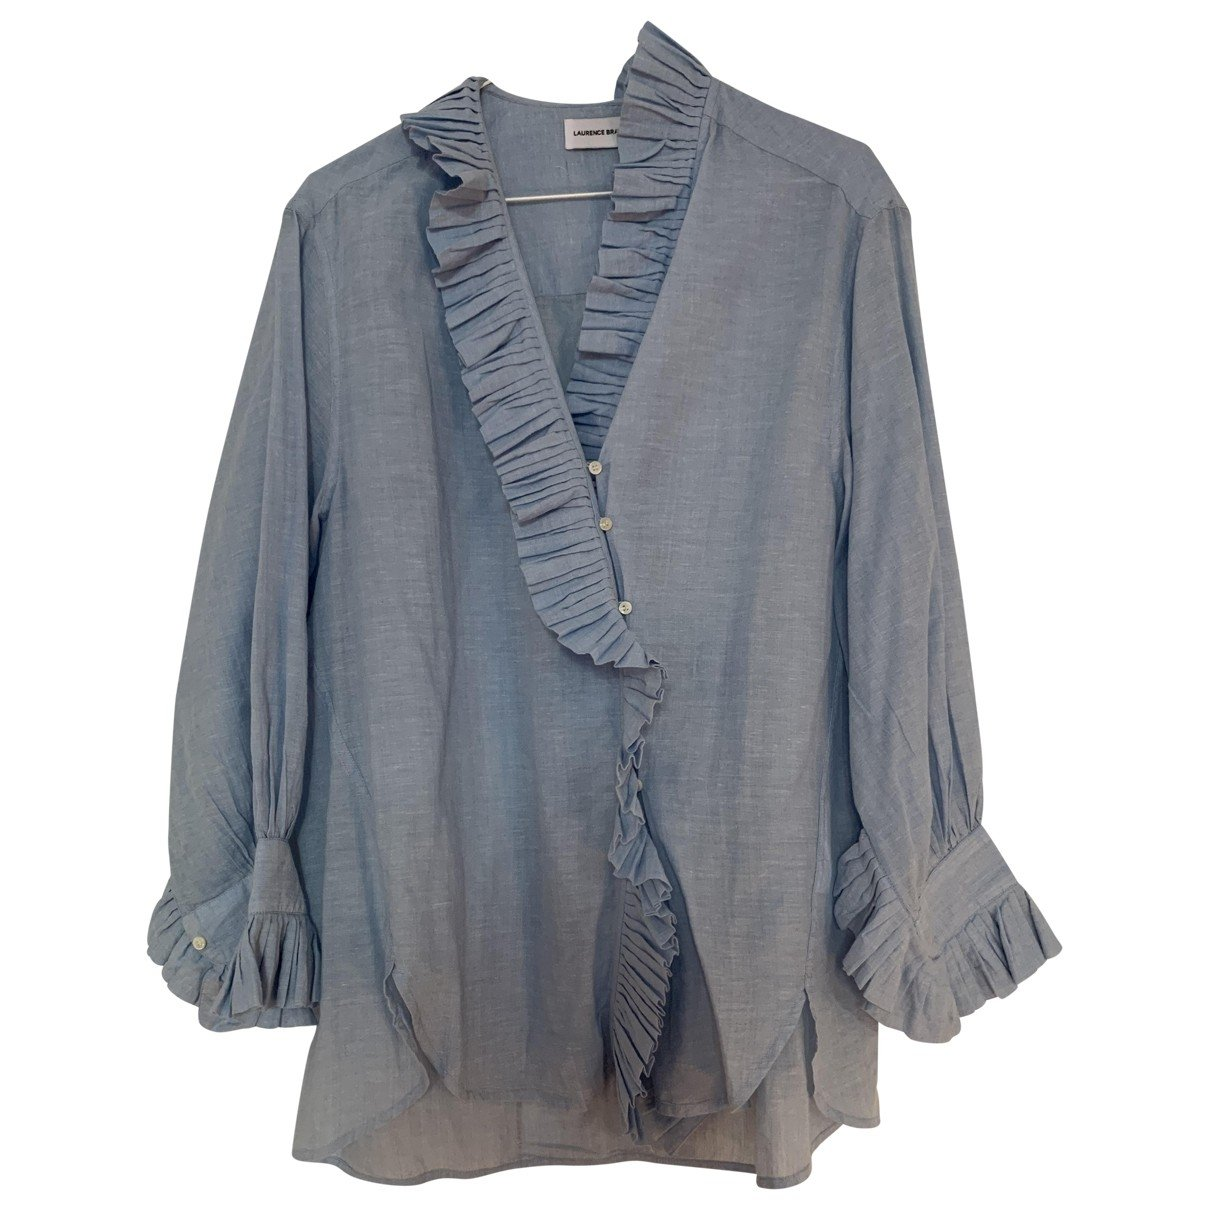 Laurence Bras N Blue Cotton Top for Women